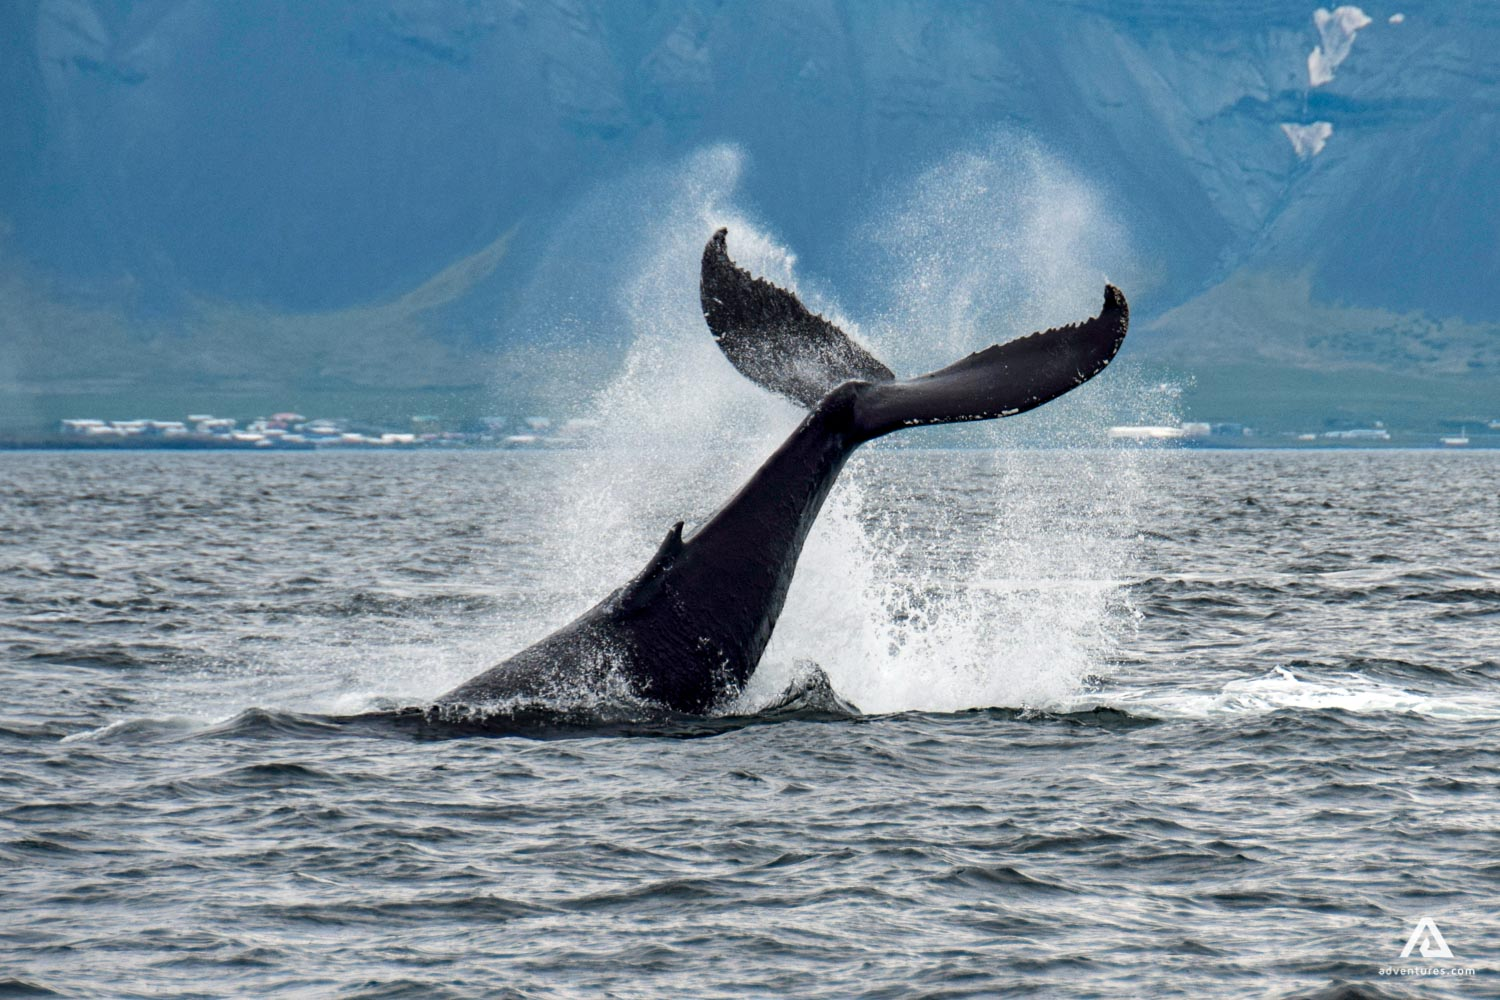 Whales often rise their fluke - the tail - in the air before descending back down